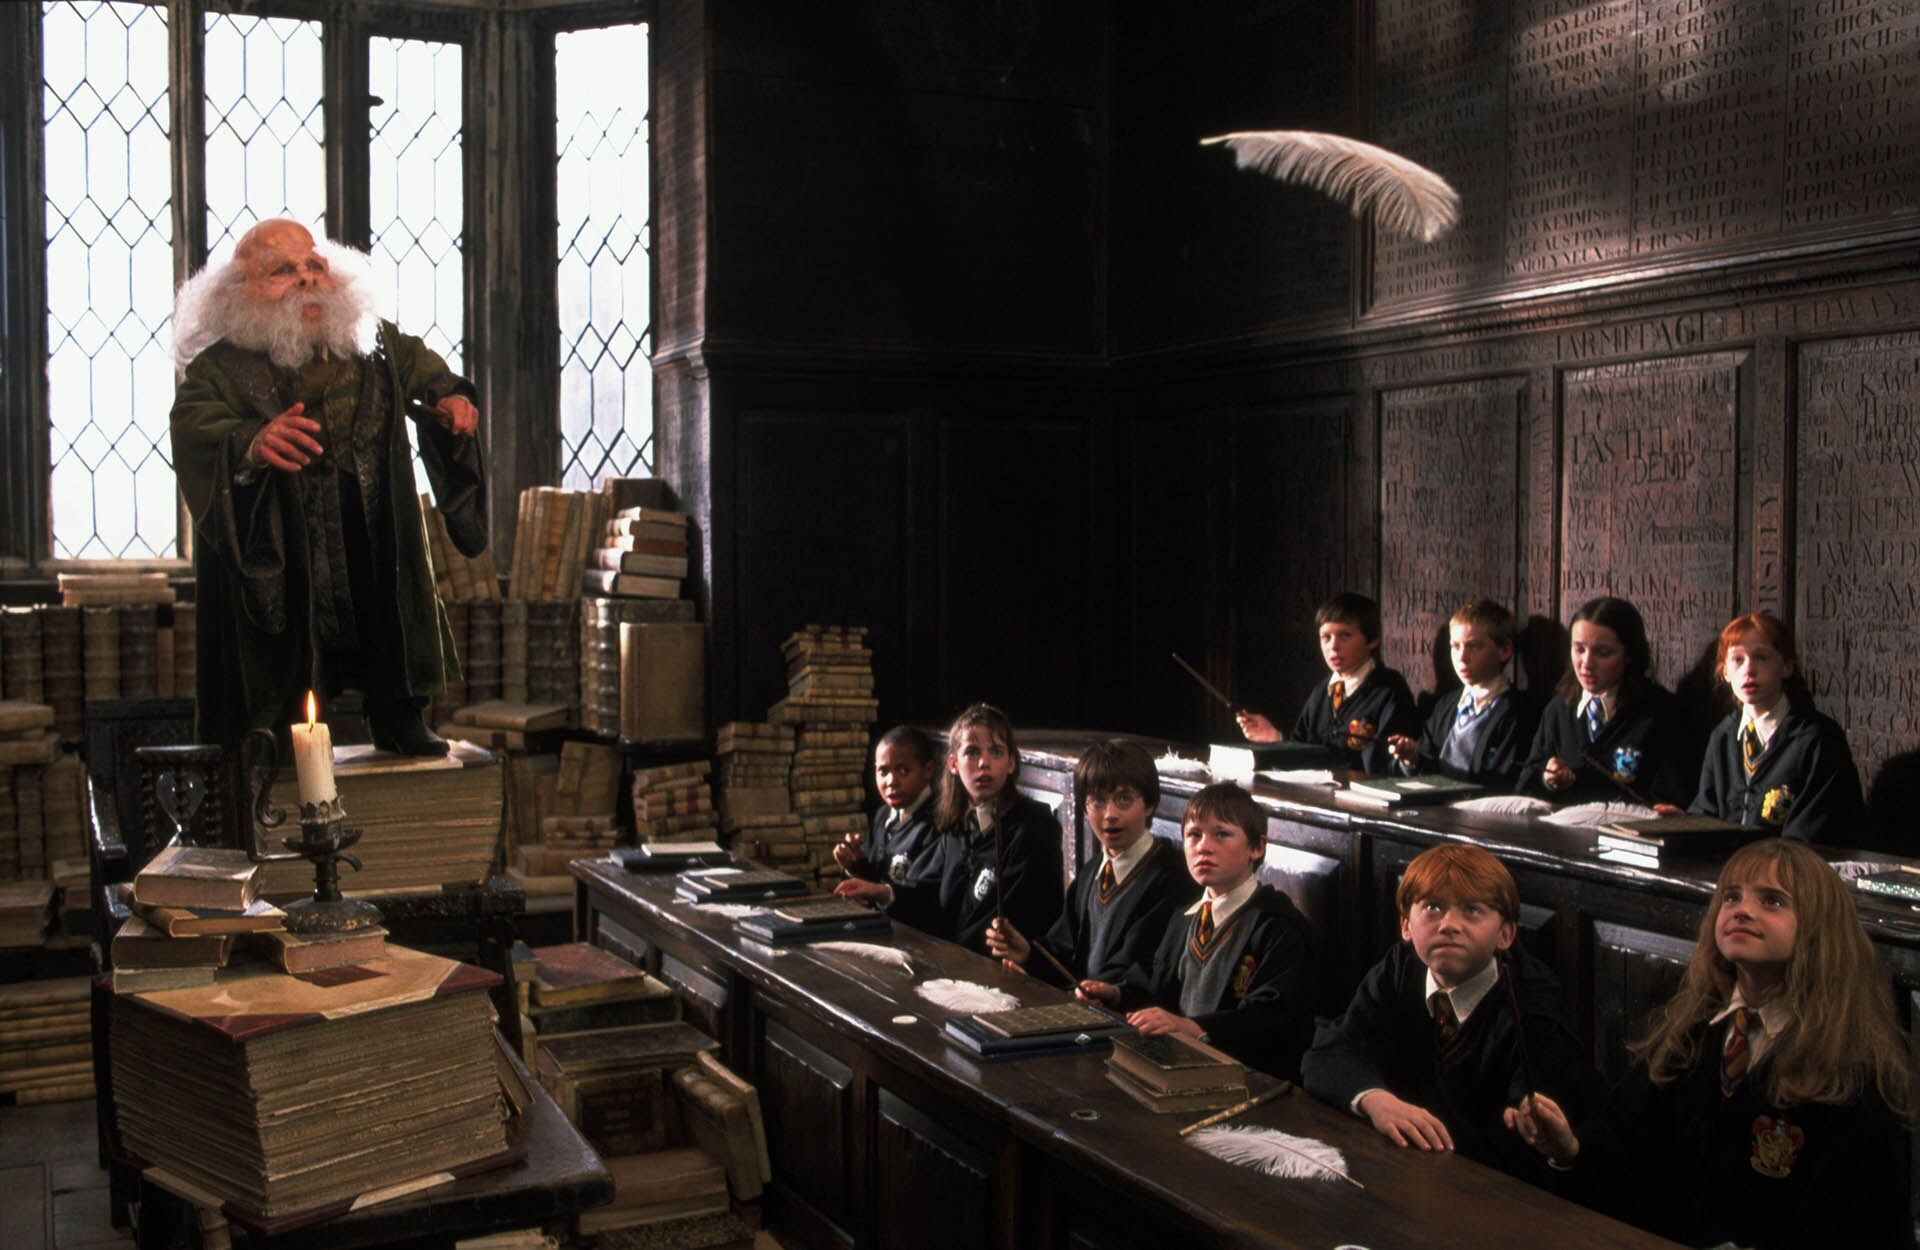 Harry Potter and the Philosopher's Stone - Image 12